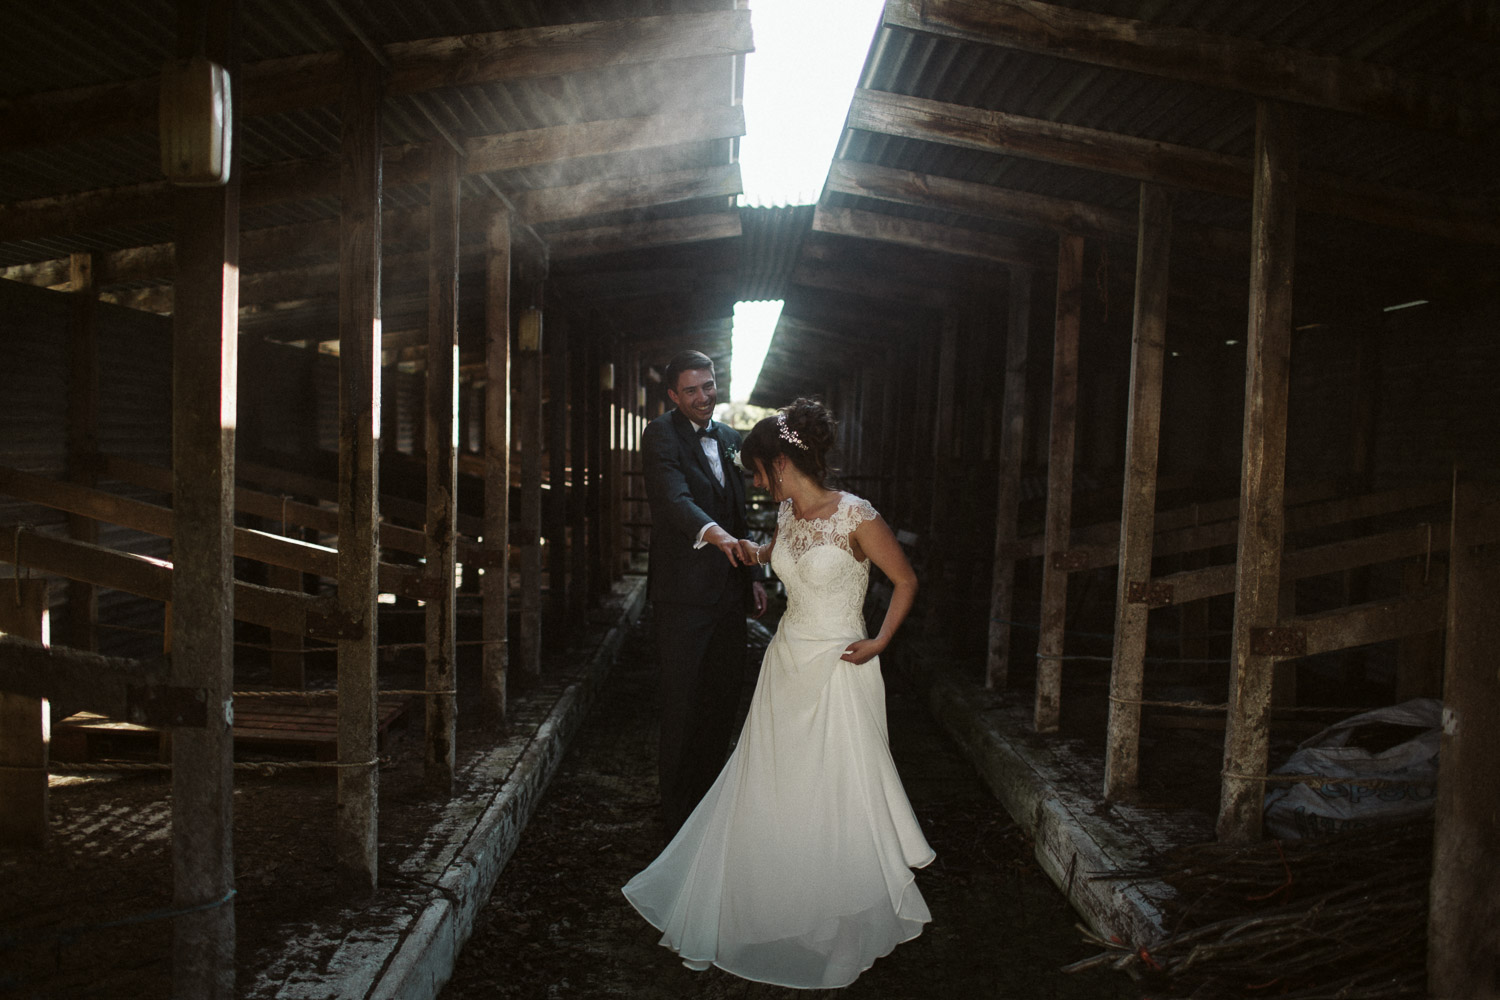 newlyweds helping each other through dusty cowshed